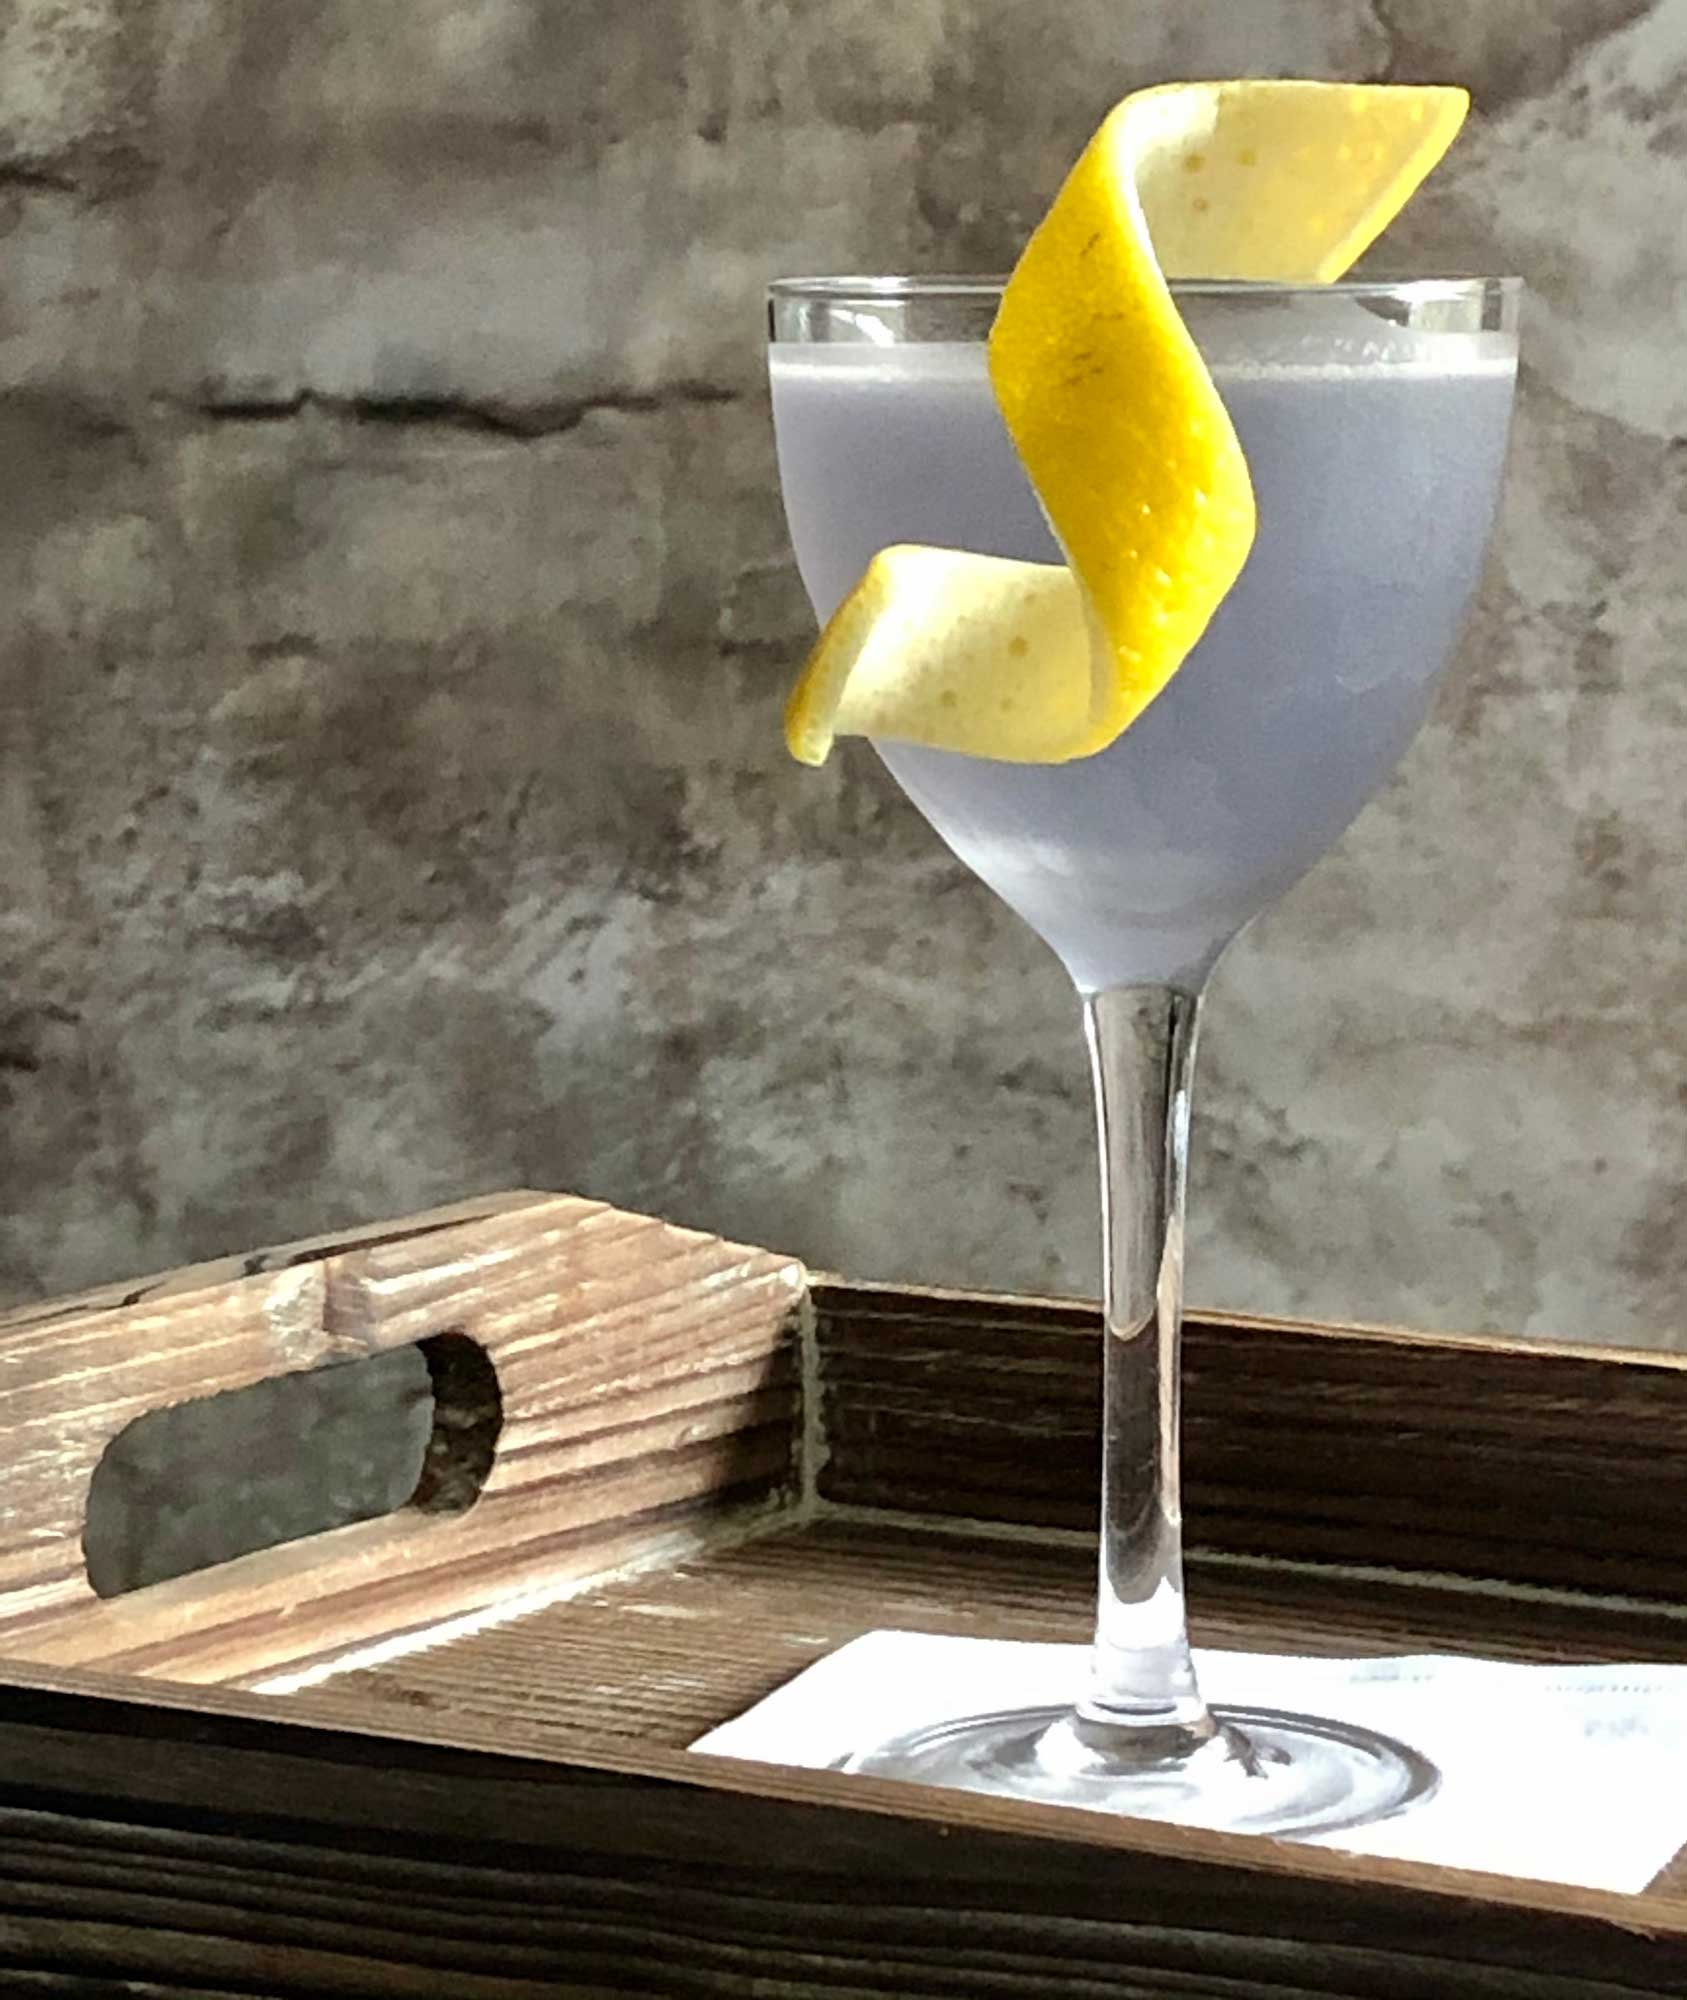 An example of the Blue Moon, the mixed drink (cocktail) featuring Hayman's London Dry Gin, Rothman & Winter Crème de Violette, and lemon juice; photo by Lee Edwards